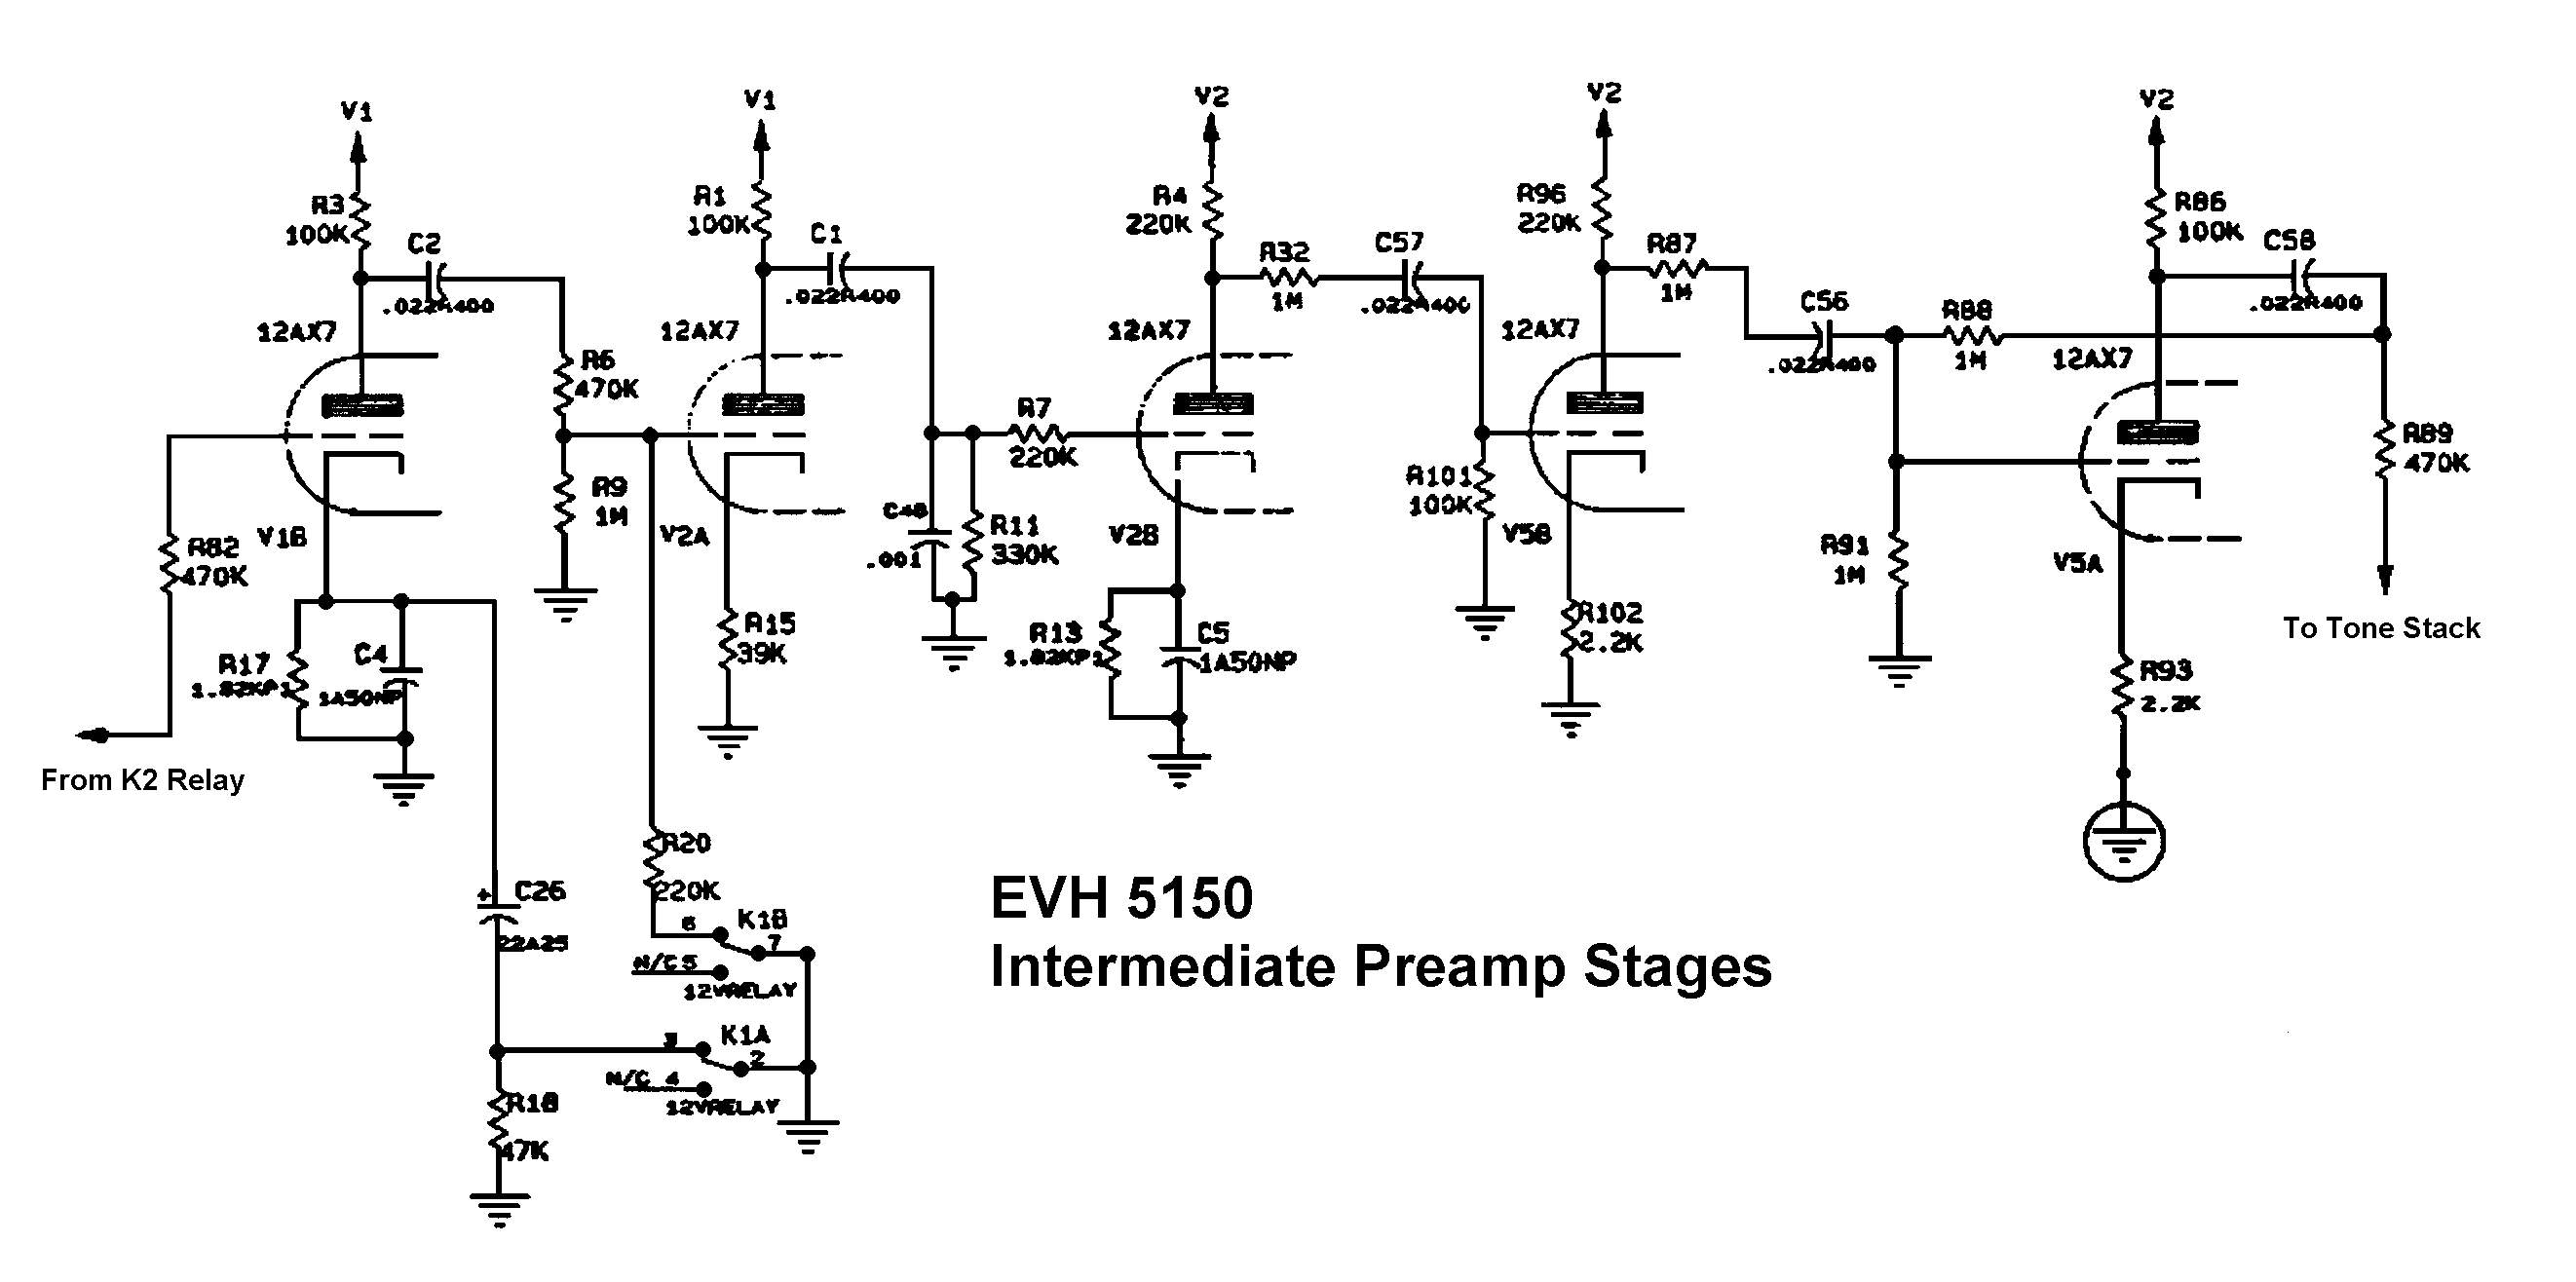 magnificent peavey footswitch wiring diagram photos the best peavey concert nice peavey 03376410 wiring diagram ideas electrical and wiring